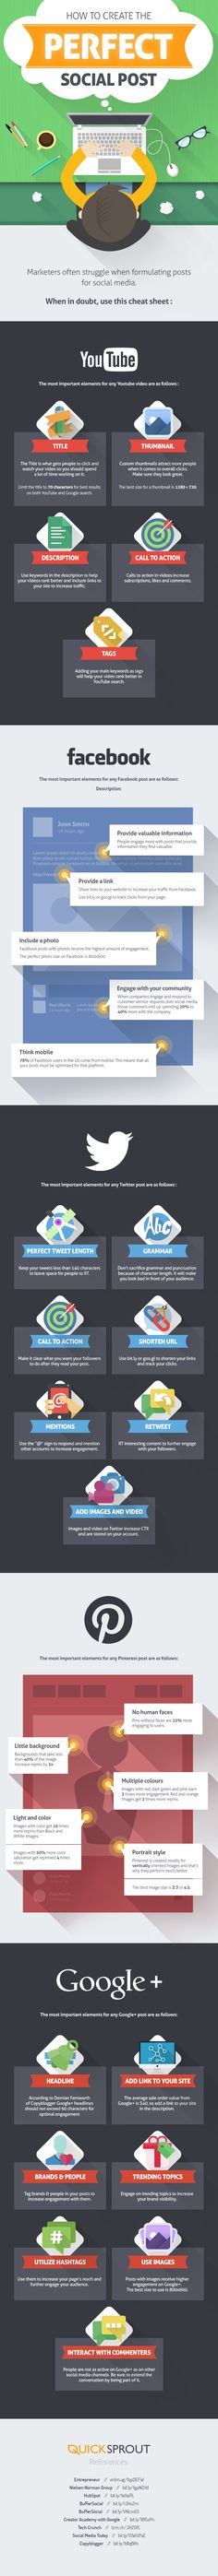 How to Create the Perfect #SocialMedia Post - #infographic Facebook, YouTube, Twitter, GooglePlus, Pinterest